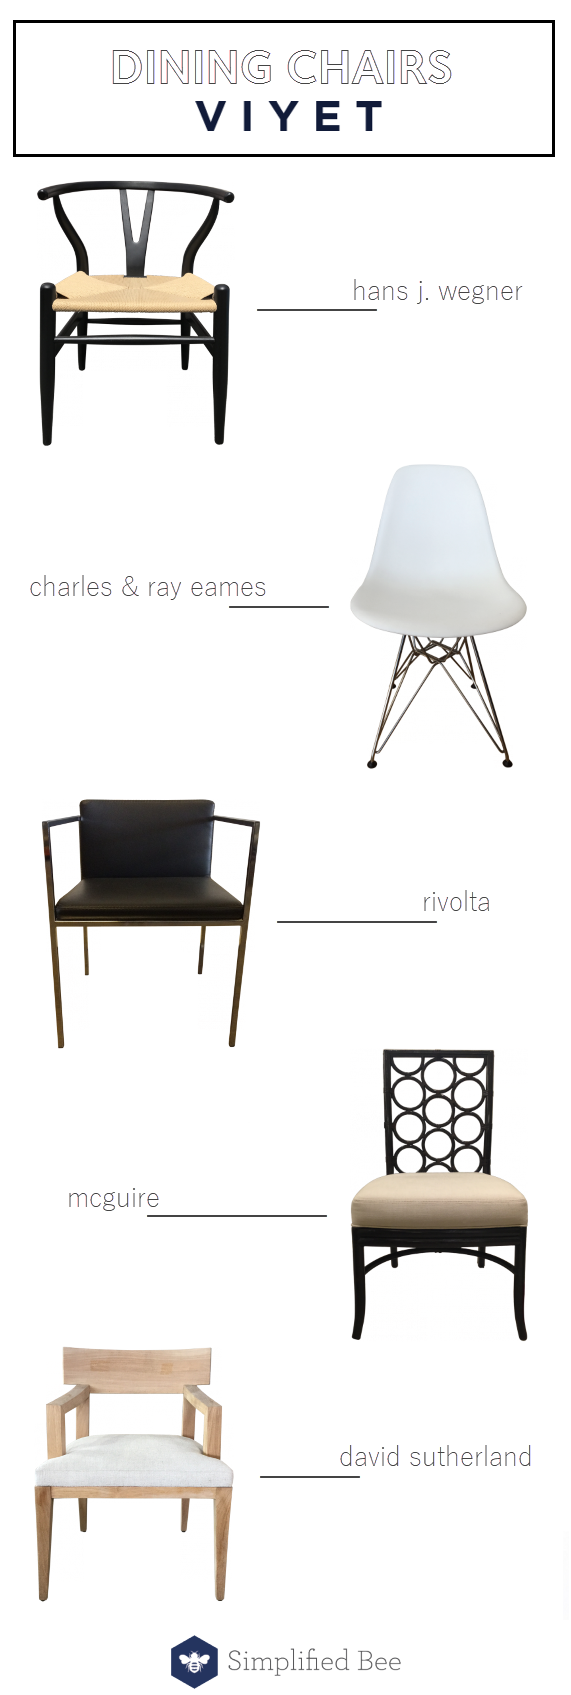 dining chairs // viyet